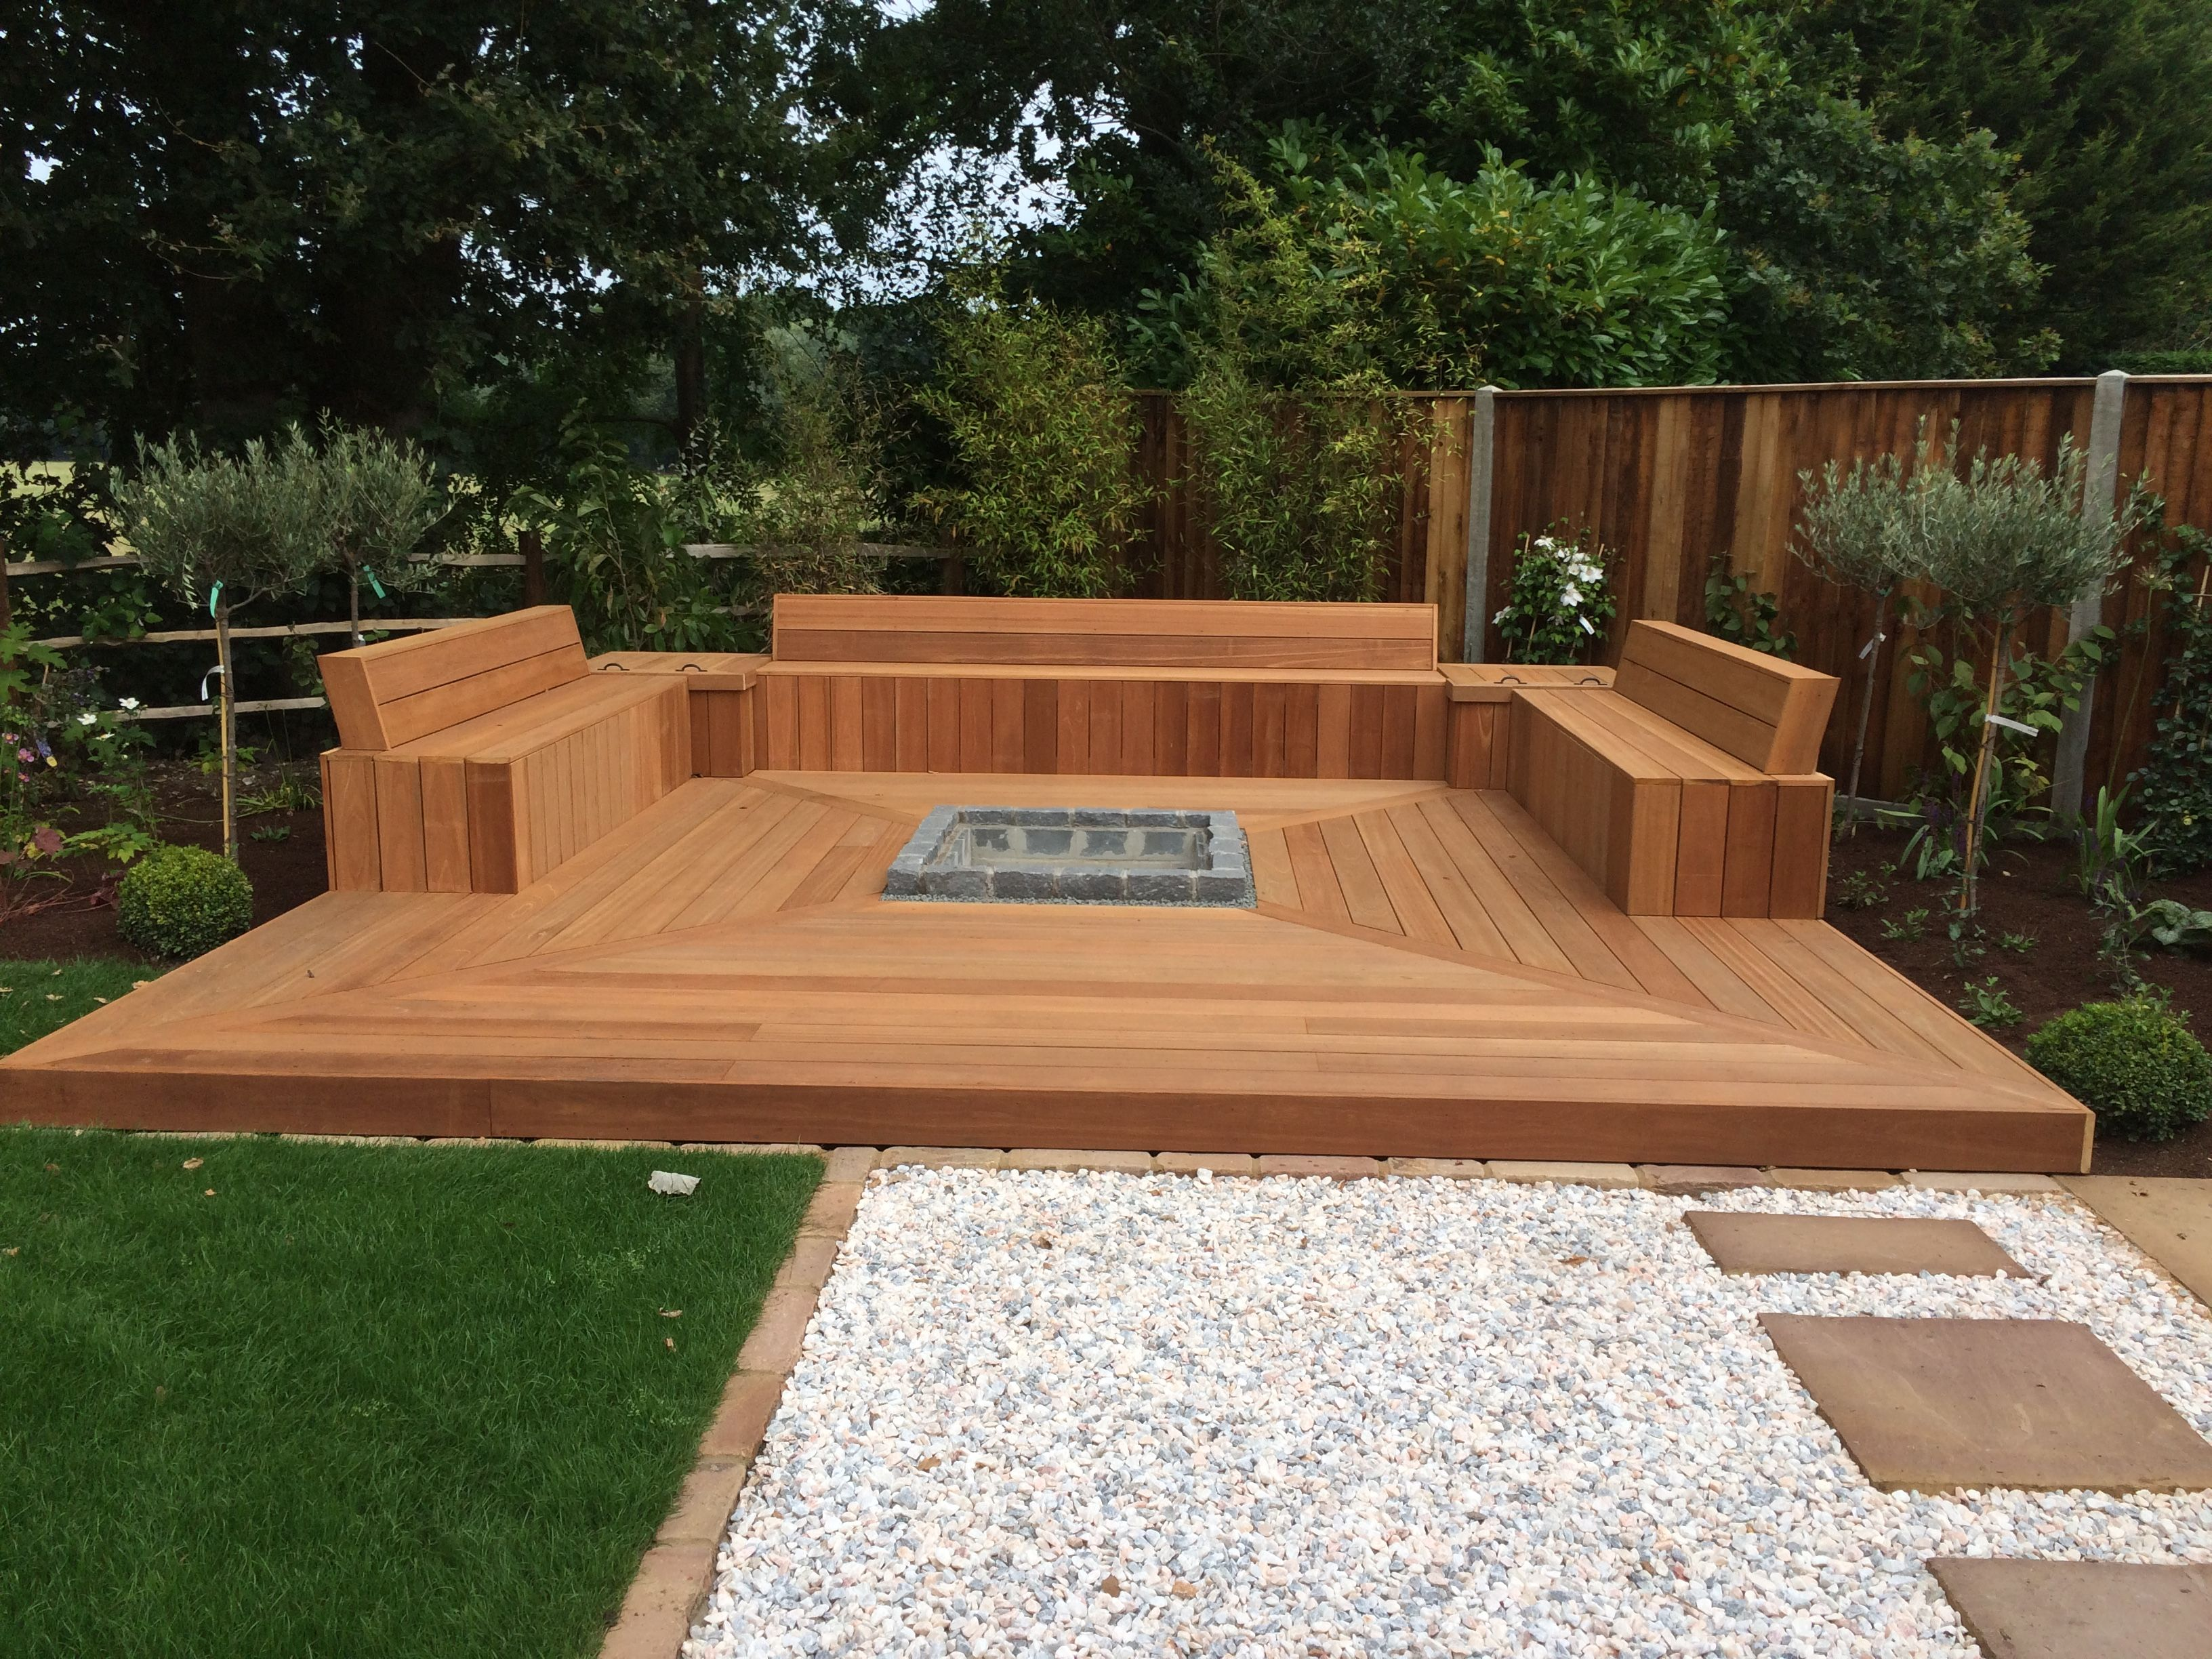 Decking Area Created Using Yellow Balau Timber With Hidden Storage Areas And Sunken Fire Pit Deck Fire Pit Sunken Fire Pits Outdoor Fire Pit